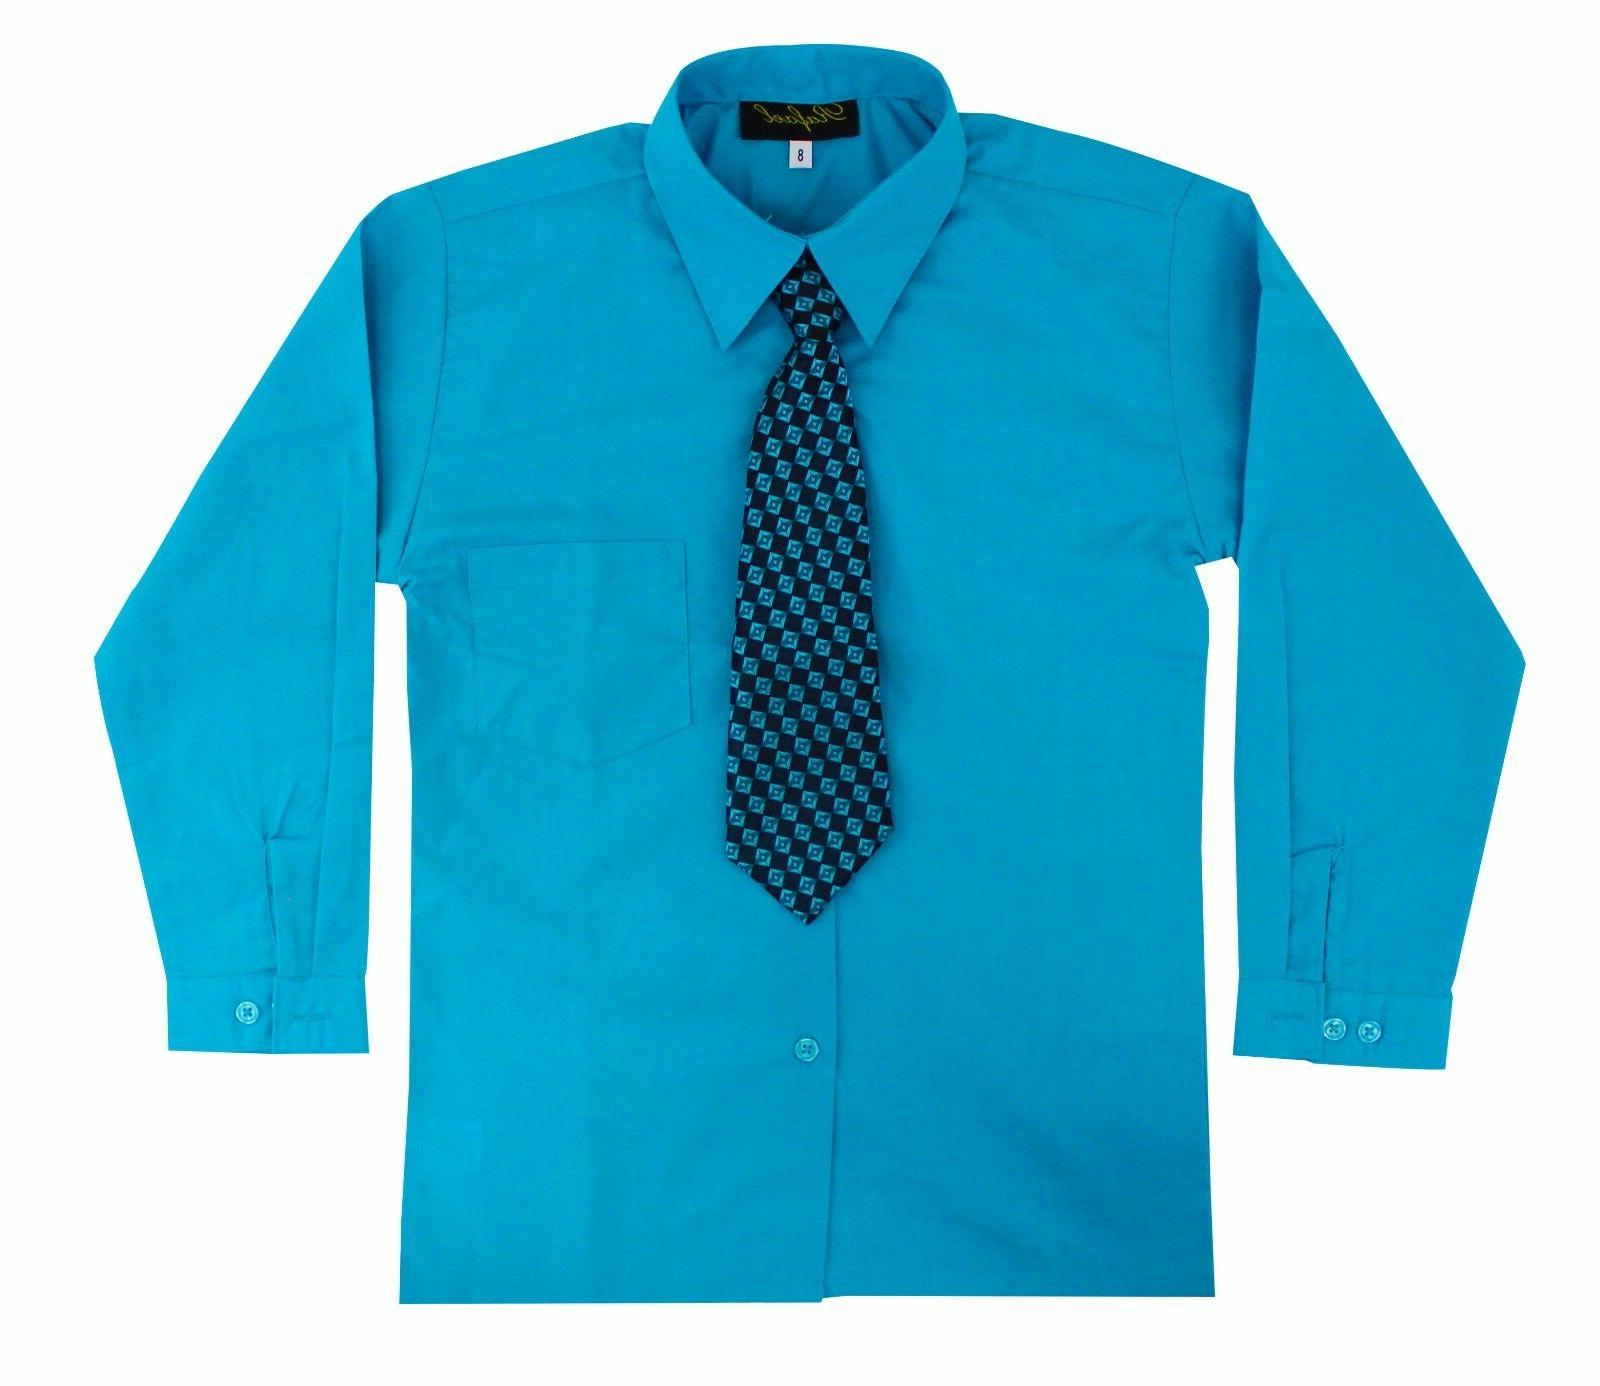 Kids Sleeve Shirt with Tie Size 2T to